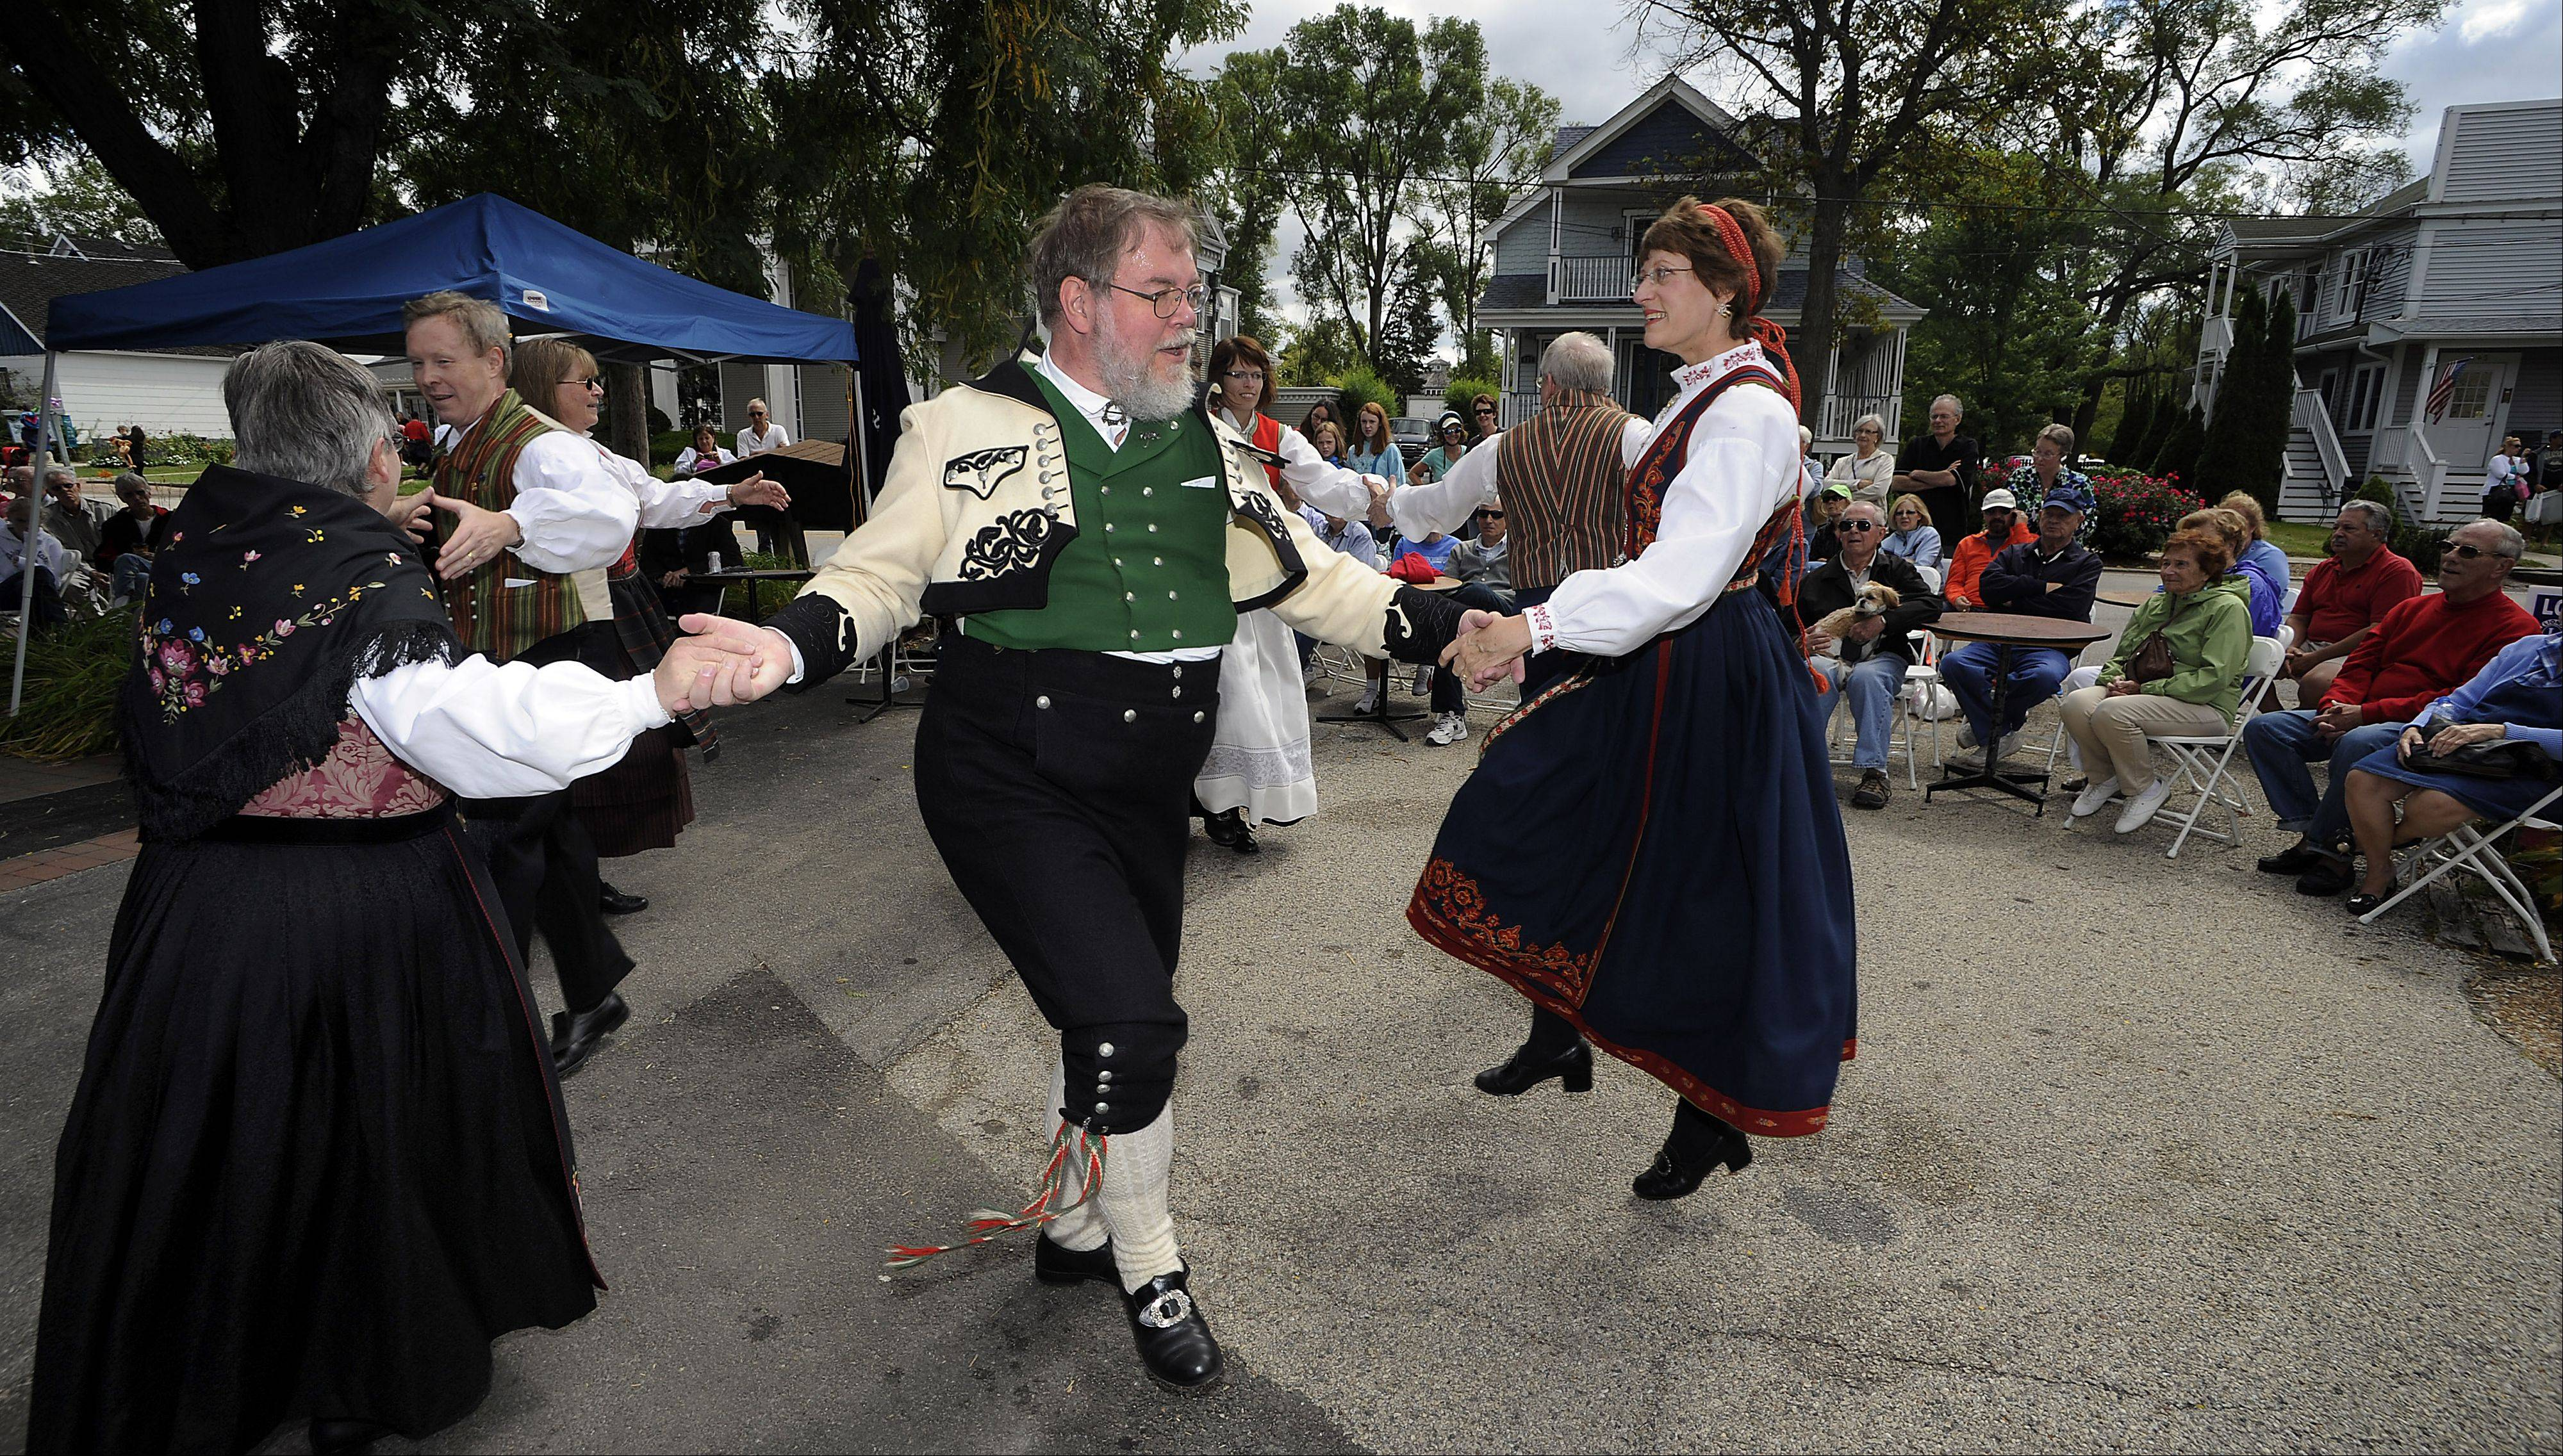 Paul Neumann of Vernon Hills does the Norwegian polka with several dance partners at last year's World Tour.